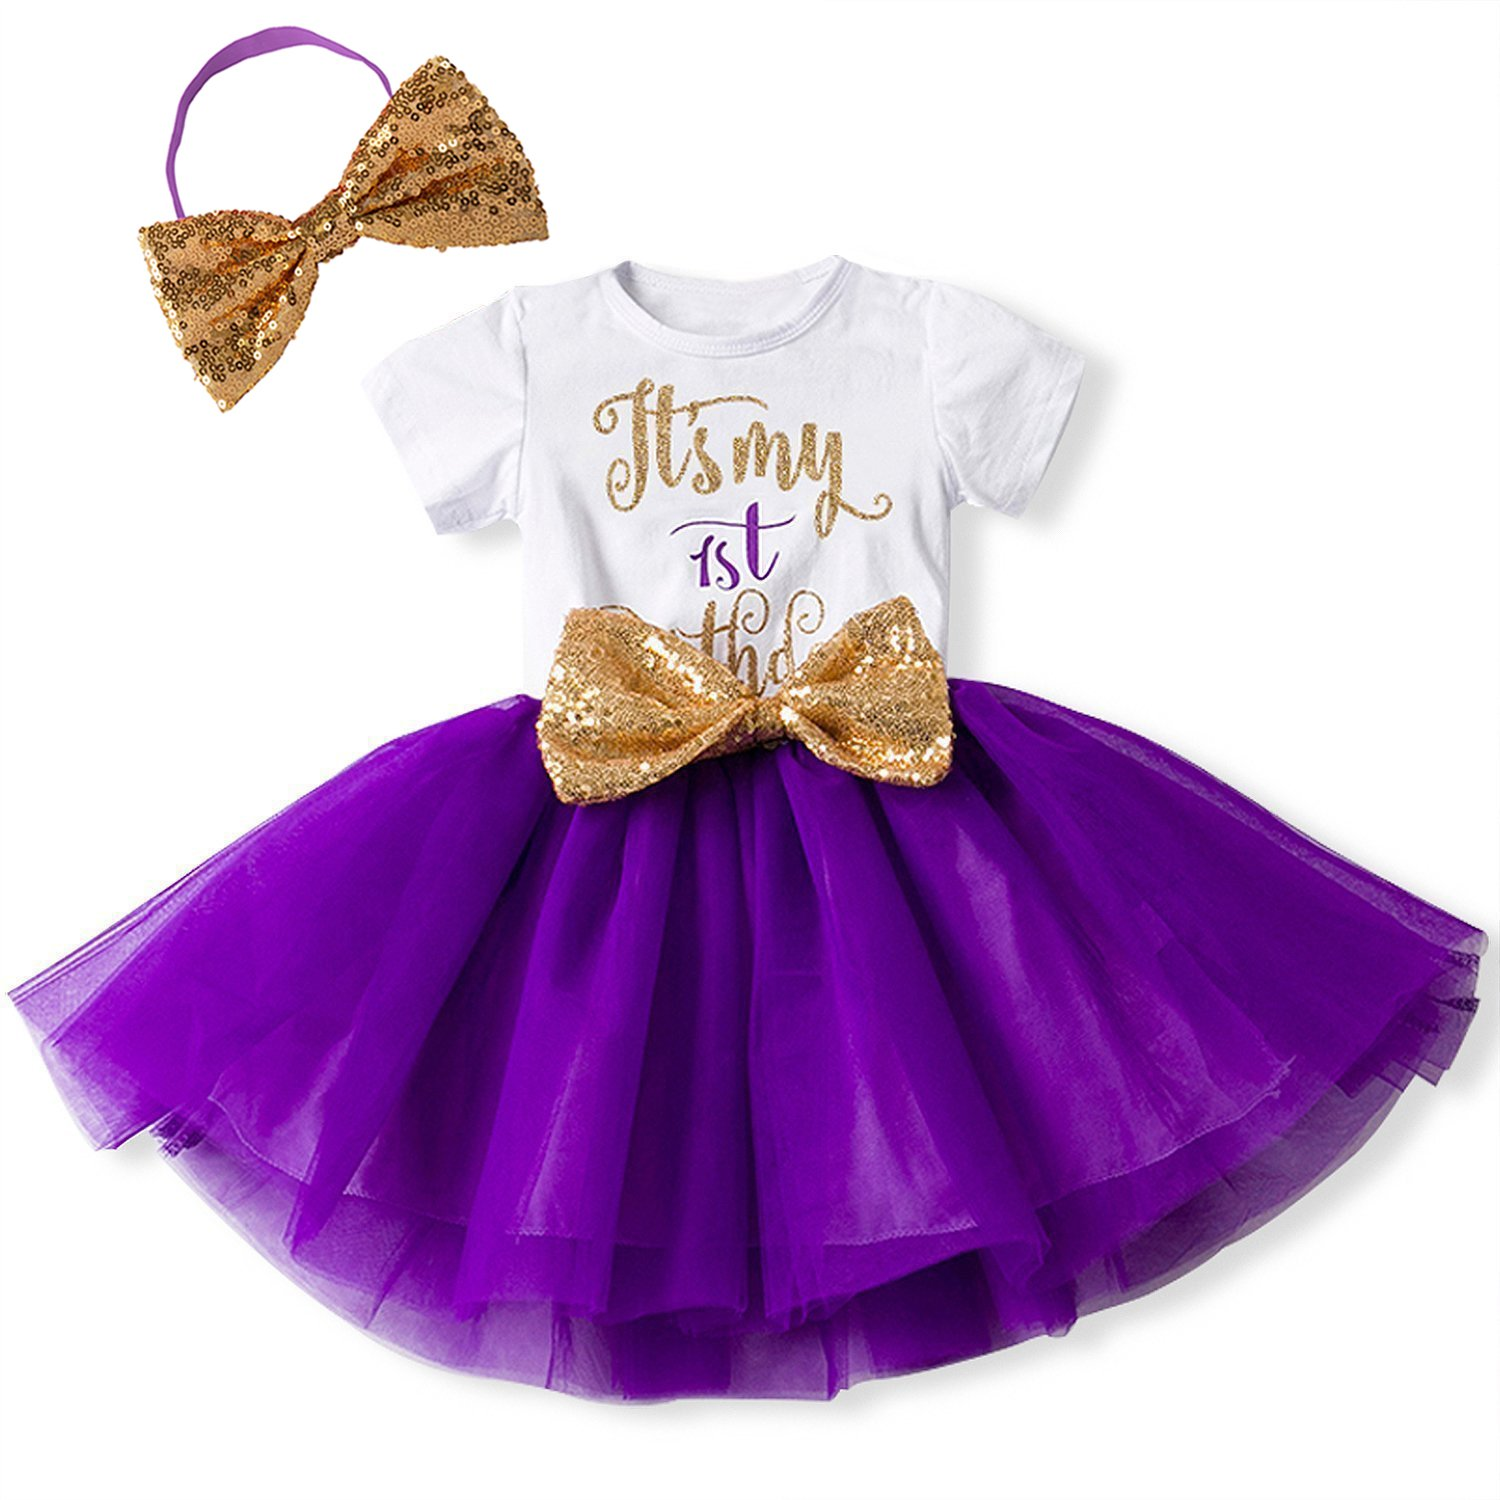 Newborn Baby Infant Toddler Girls It's My 1st/2nd Birthday Cake Smash Shiny Printed Sequin Bow Tutu Princess Bowknot Dress Outfit 1st Christmas Outfit Dress